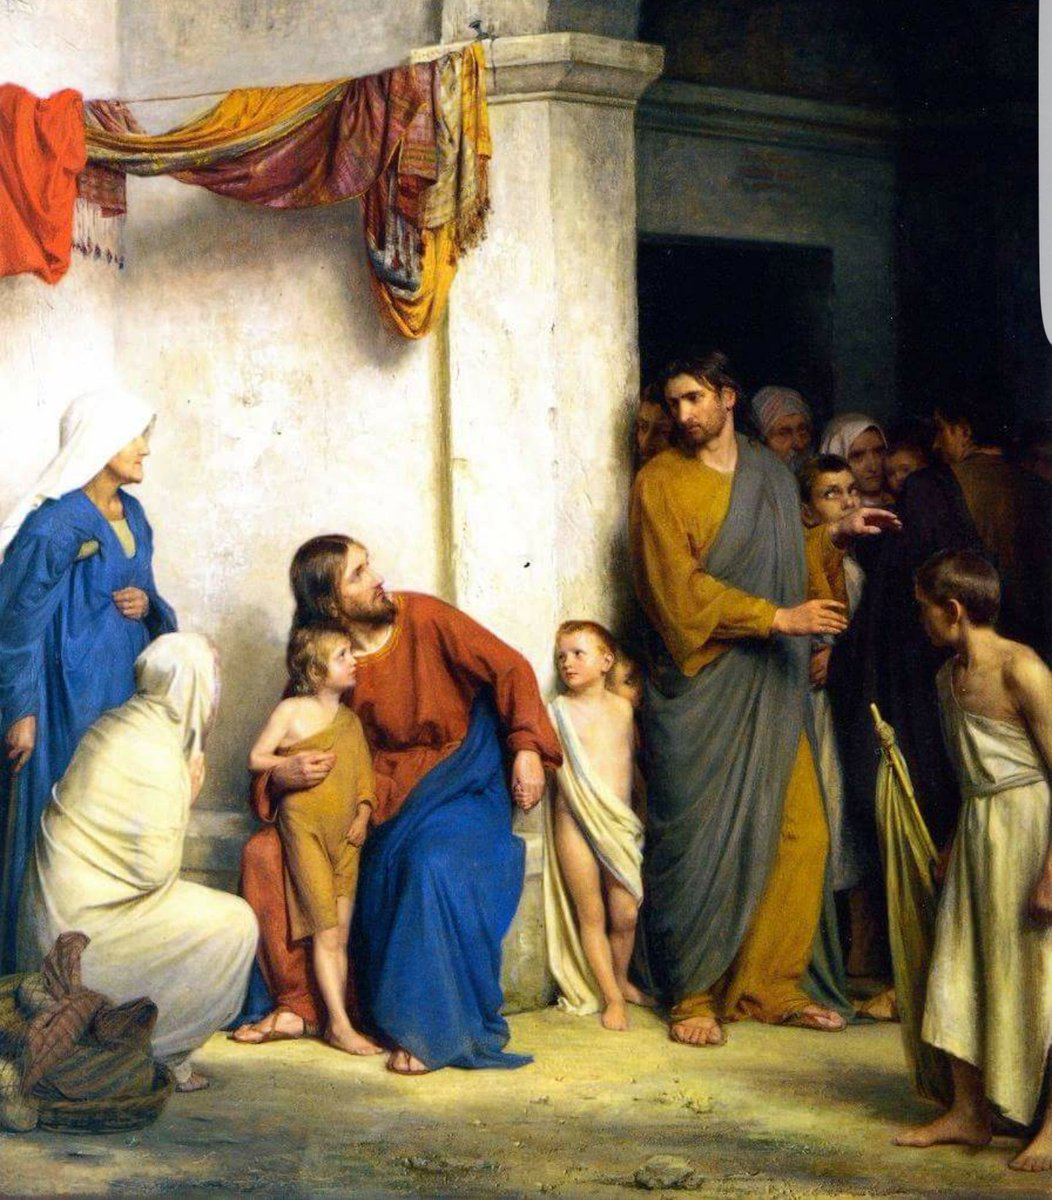 """Sheila Lafleur on Twitter: """"Jesus~took a child and placed it by His side  and said, """"Whoever recieves this child in My name recieves Me~"""" ~ Lk  9:46-50 #Prolife #Jesus… https://t.co/kEnoK0GyEo"""""""